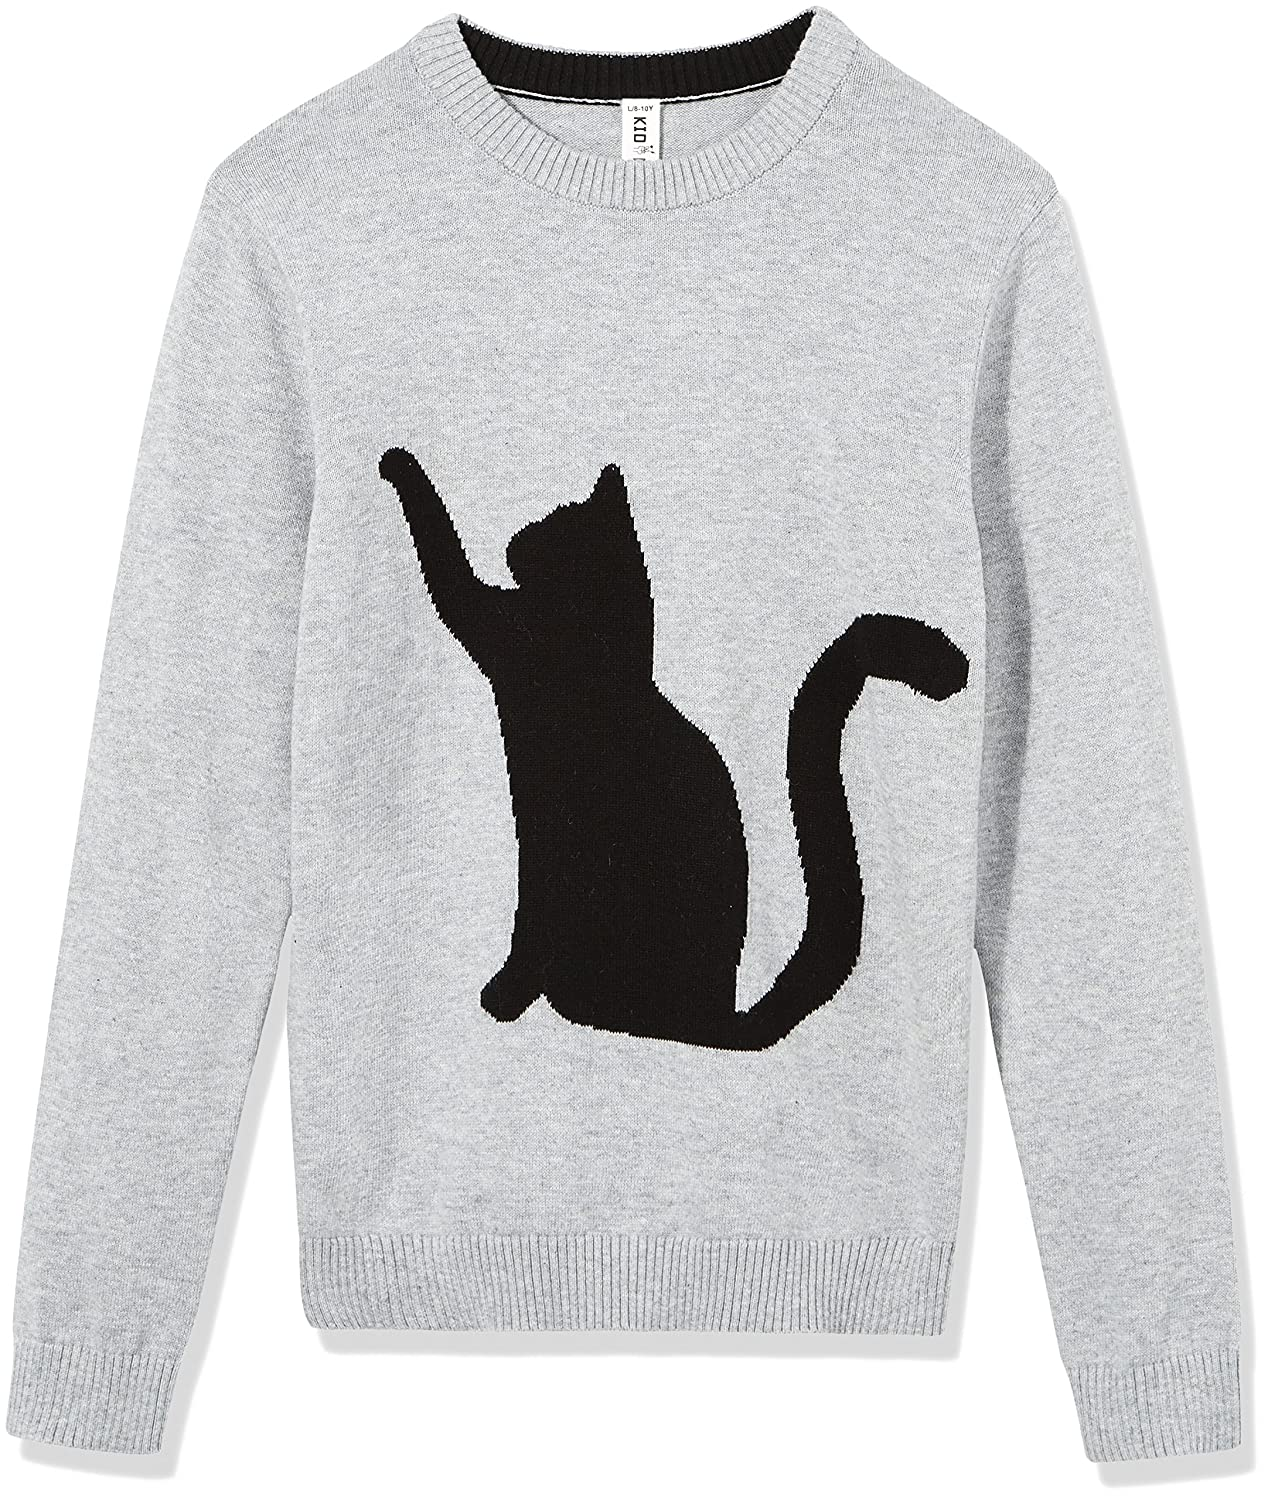 Kid Nation Kids' Sweater Long Sleeve Crew Neck Pullover with Cat Jacquard Cotton Knit Sweater for Boys or Girls